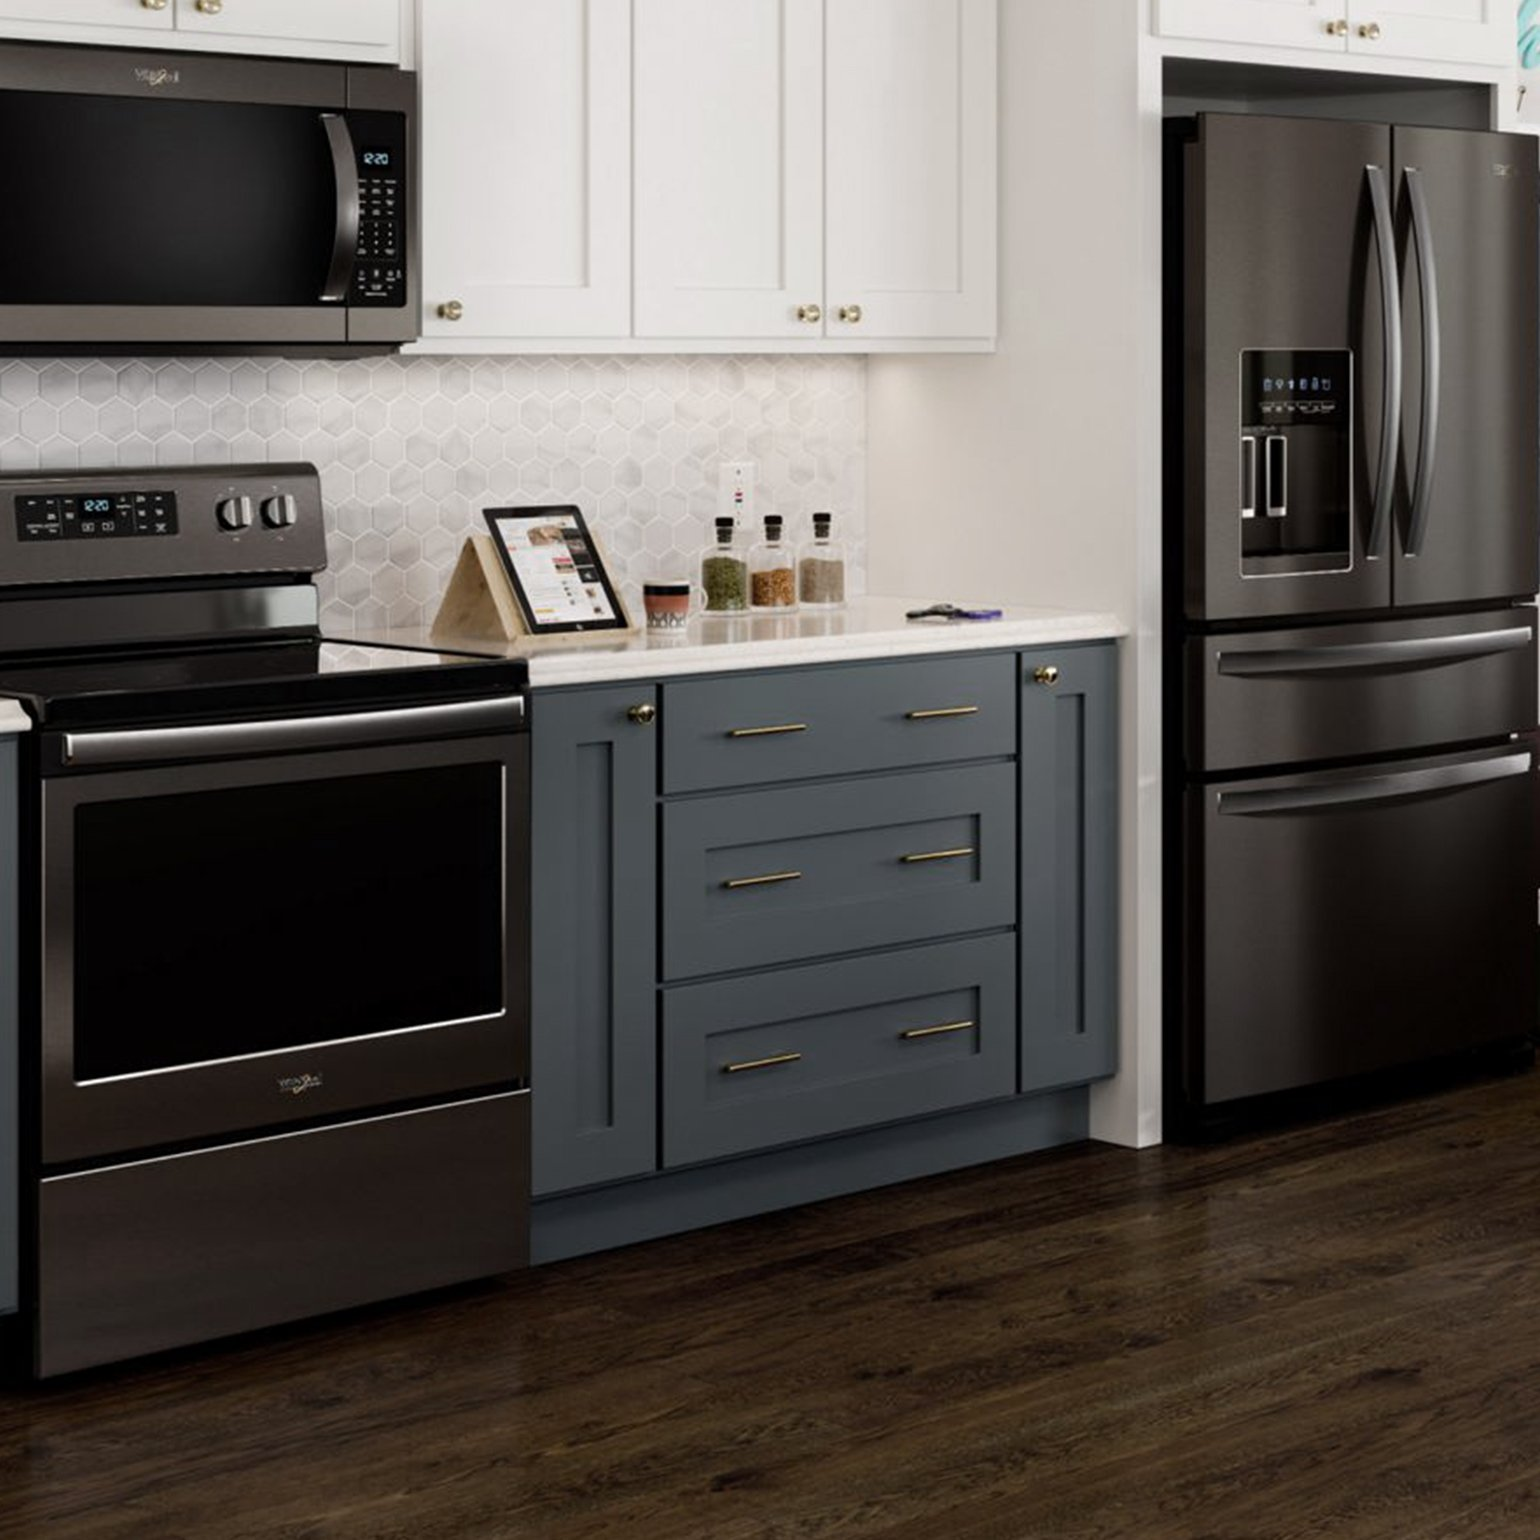 Whirlpool appliances in kitchen